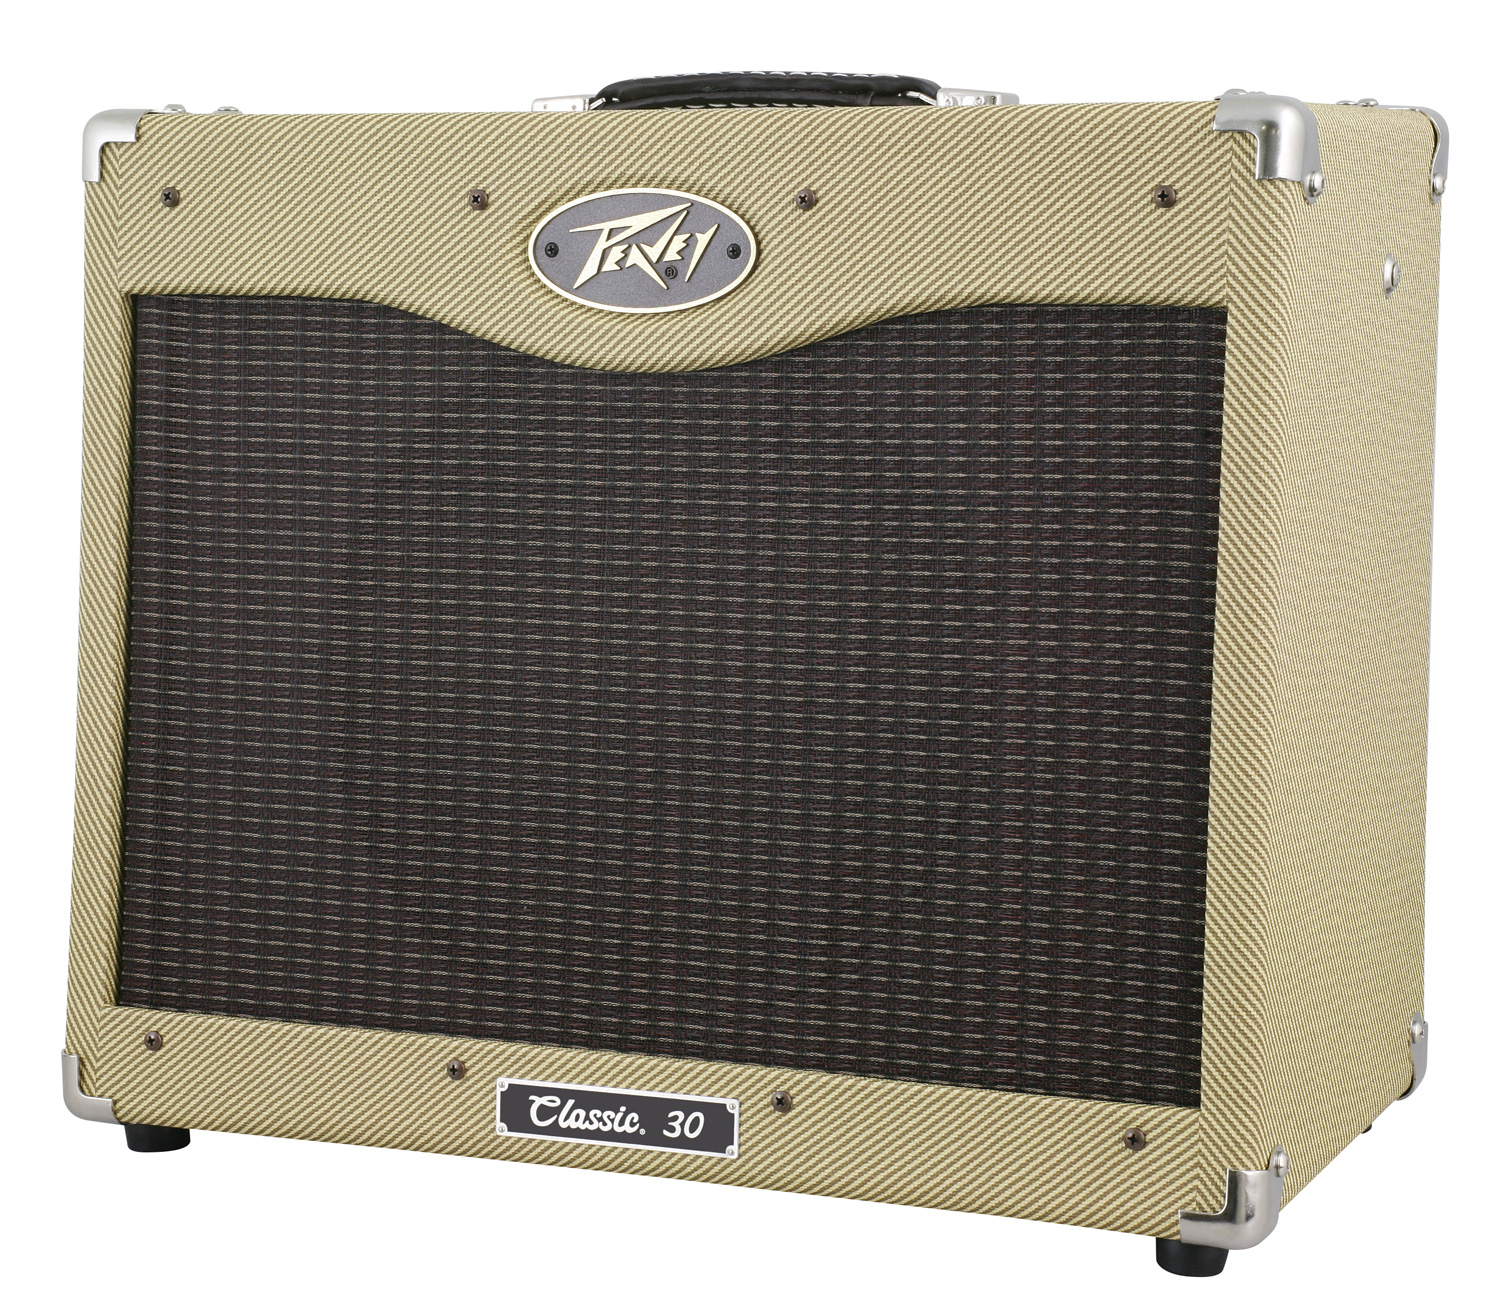 peavey classic 30 ii combo amp electric guitar 12 speaker 30w tube stand pev13 3602930 rs pack. Black Bedroom Furniture Sets. Home Design Ideas